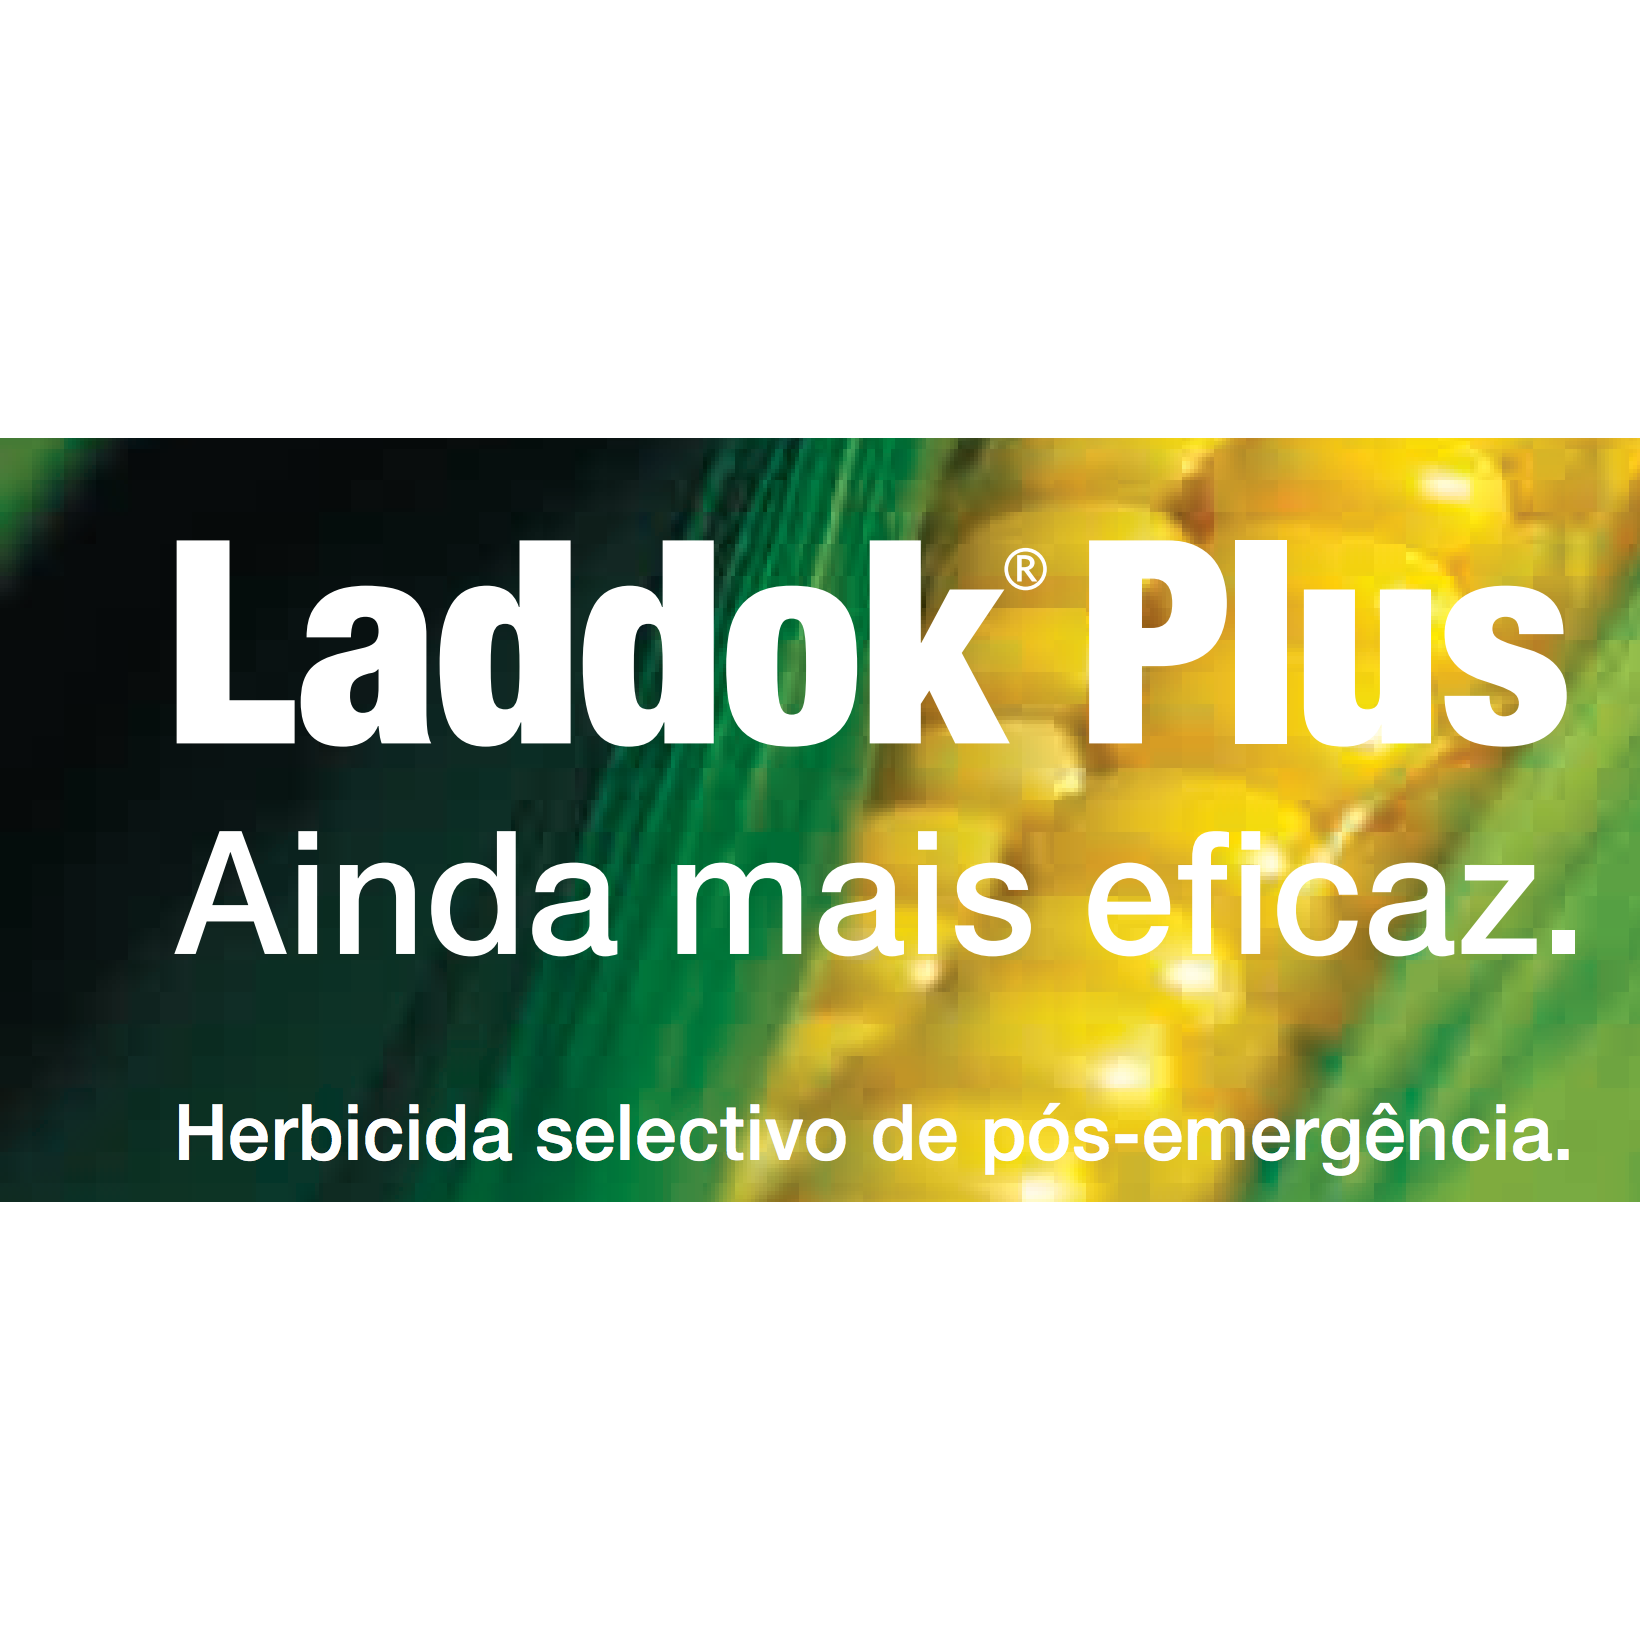 Laddok Plus